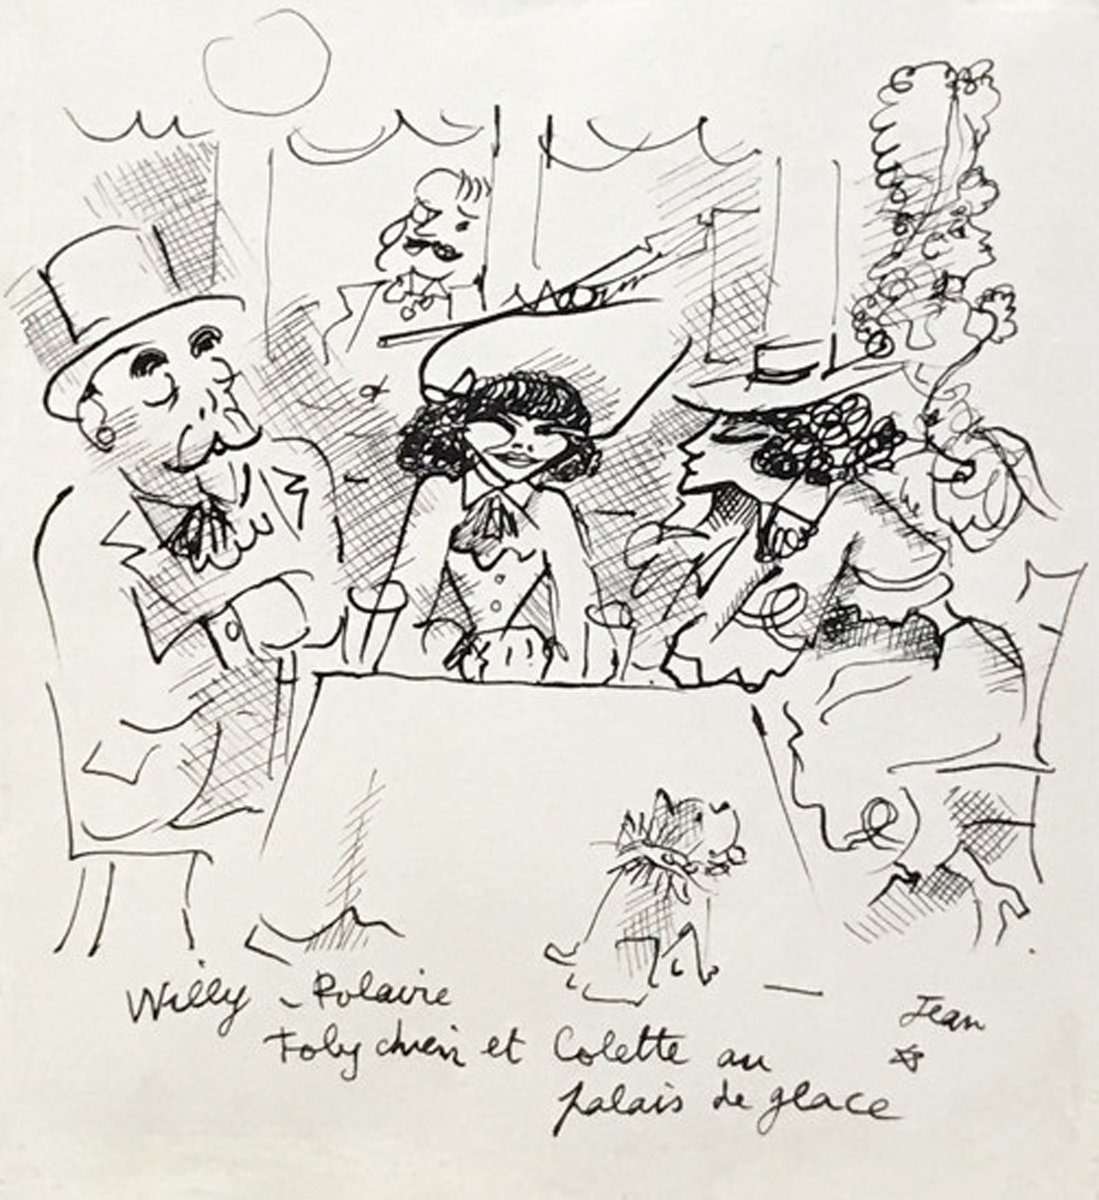 Willy, Polaire, Toby Chien Et Colette Au Palace De Glace Drawing 1935 10x8